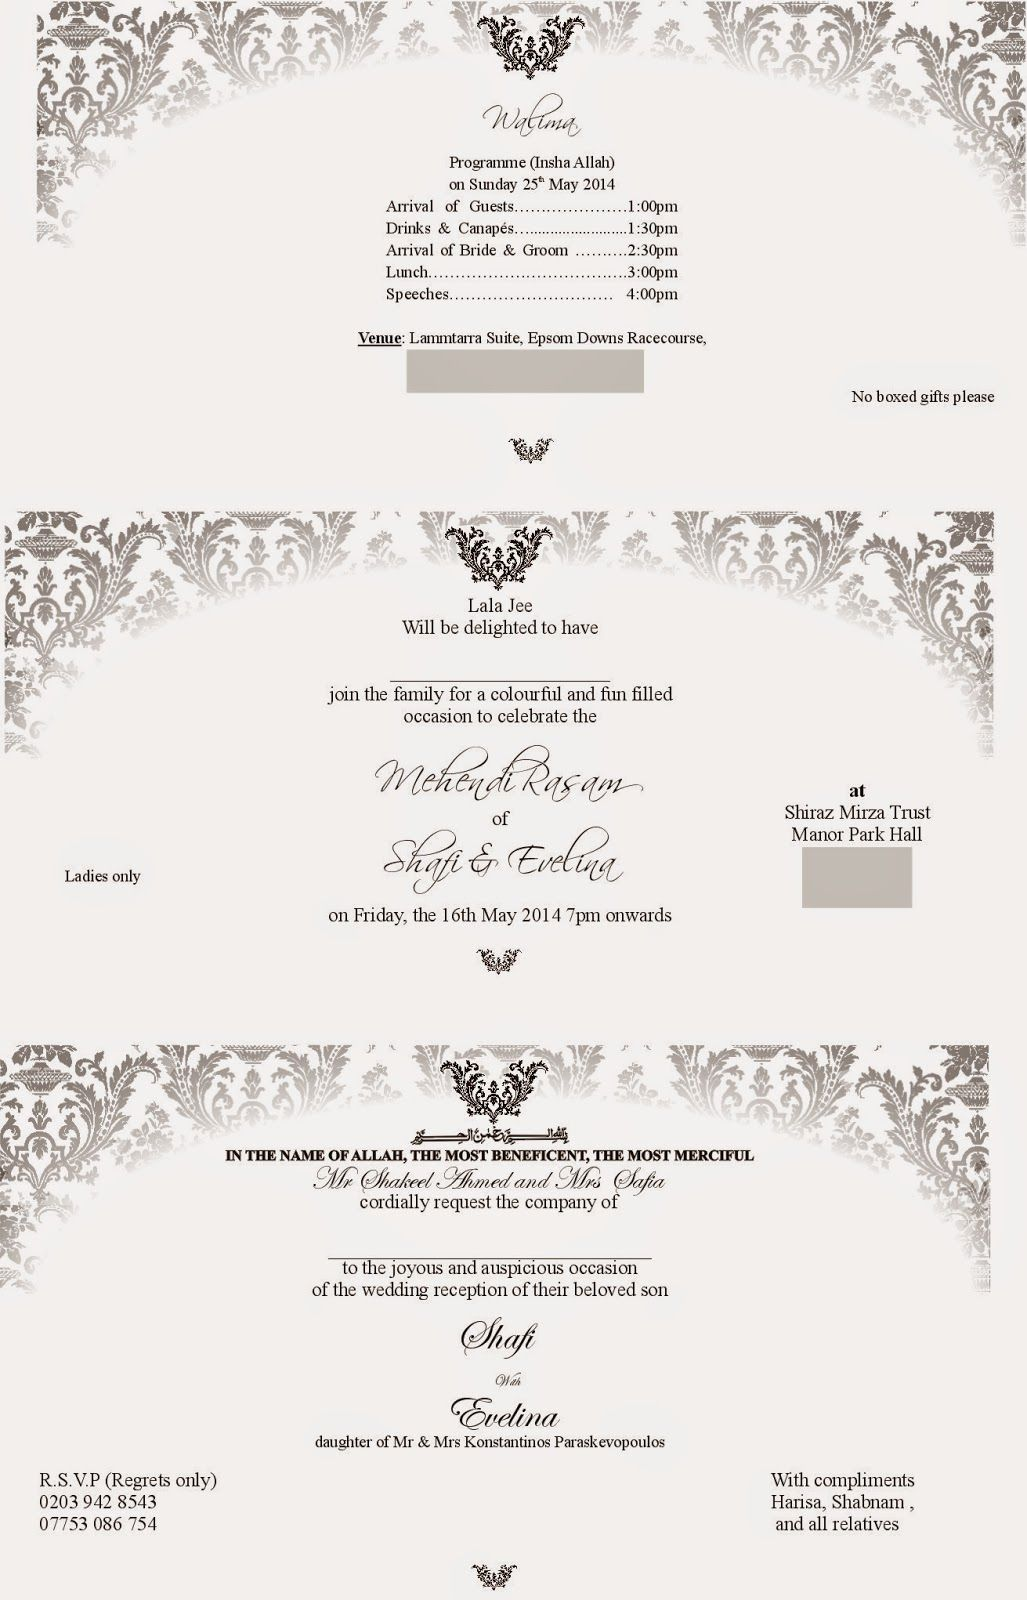 Walima Invitation Cards Wordings Lovely Wordings For Wedding Invitation Cards In Urdu Wedding Cards Wedding Card Wordings Pakistani Wedding Cards